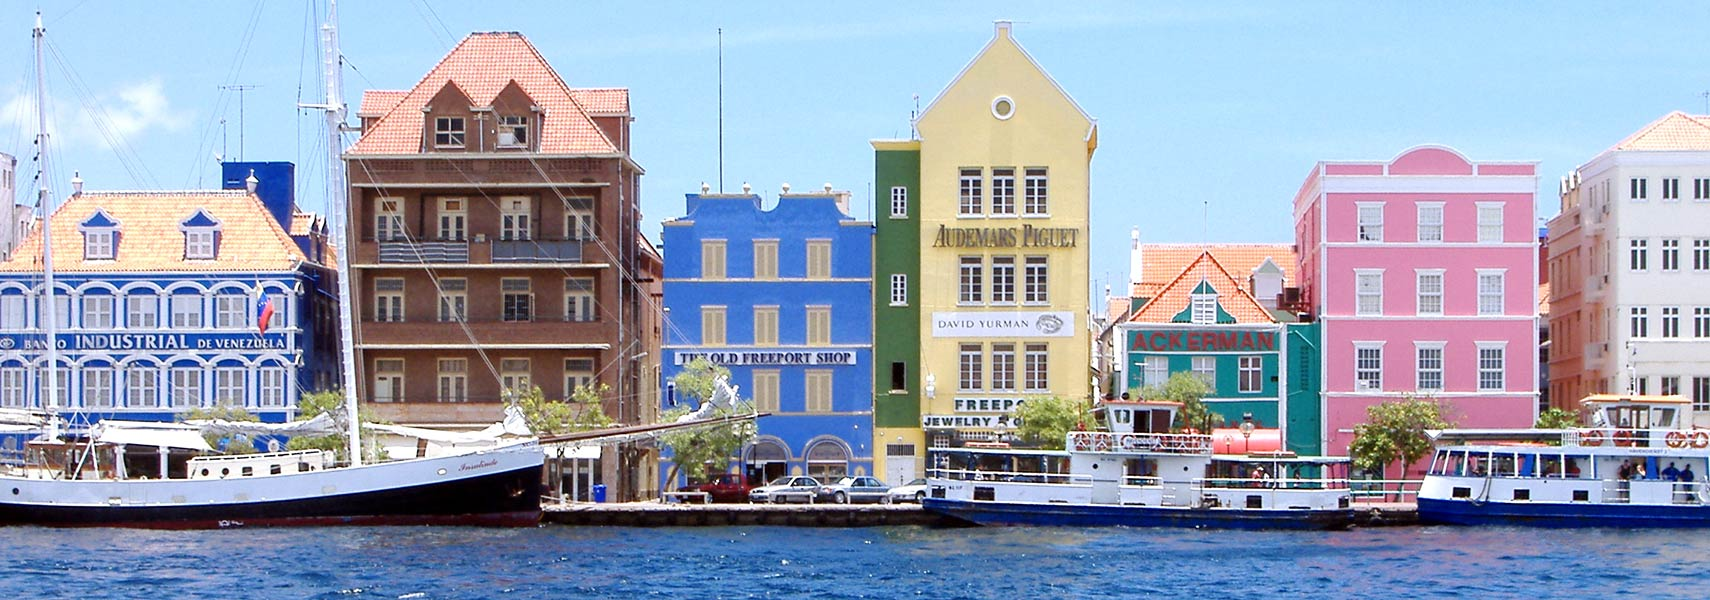 Willemstad  harbour, Curacao